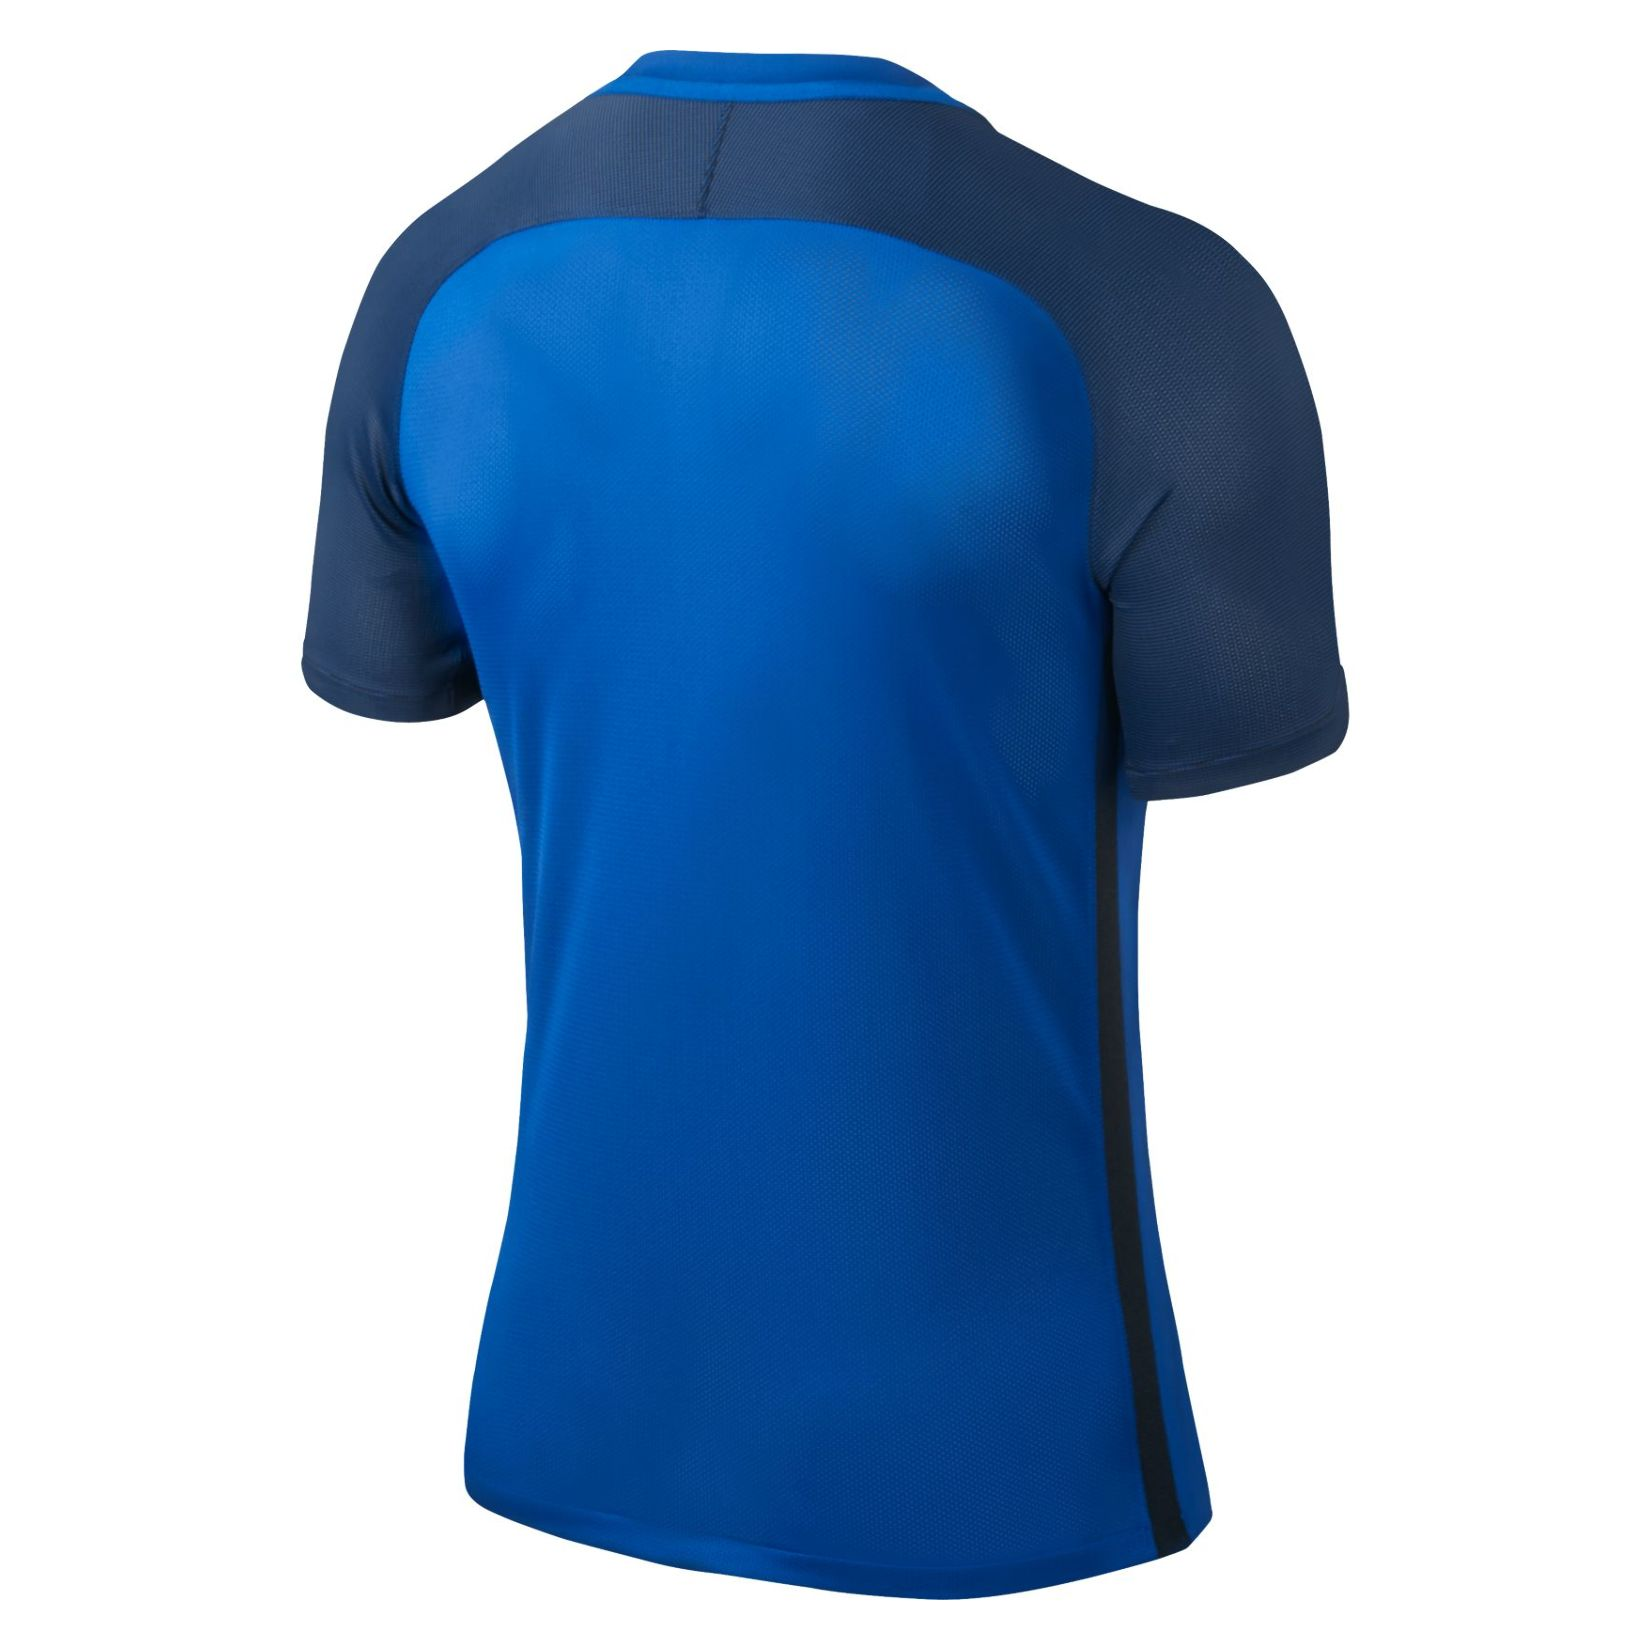 Nike Revolution Iv Short Sleeve Jersey Royal Blue-Black-White